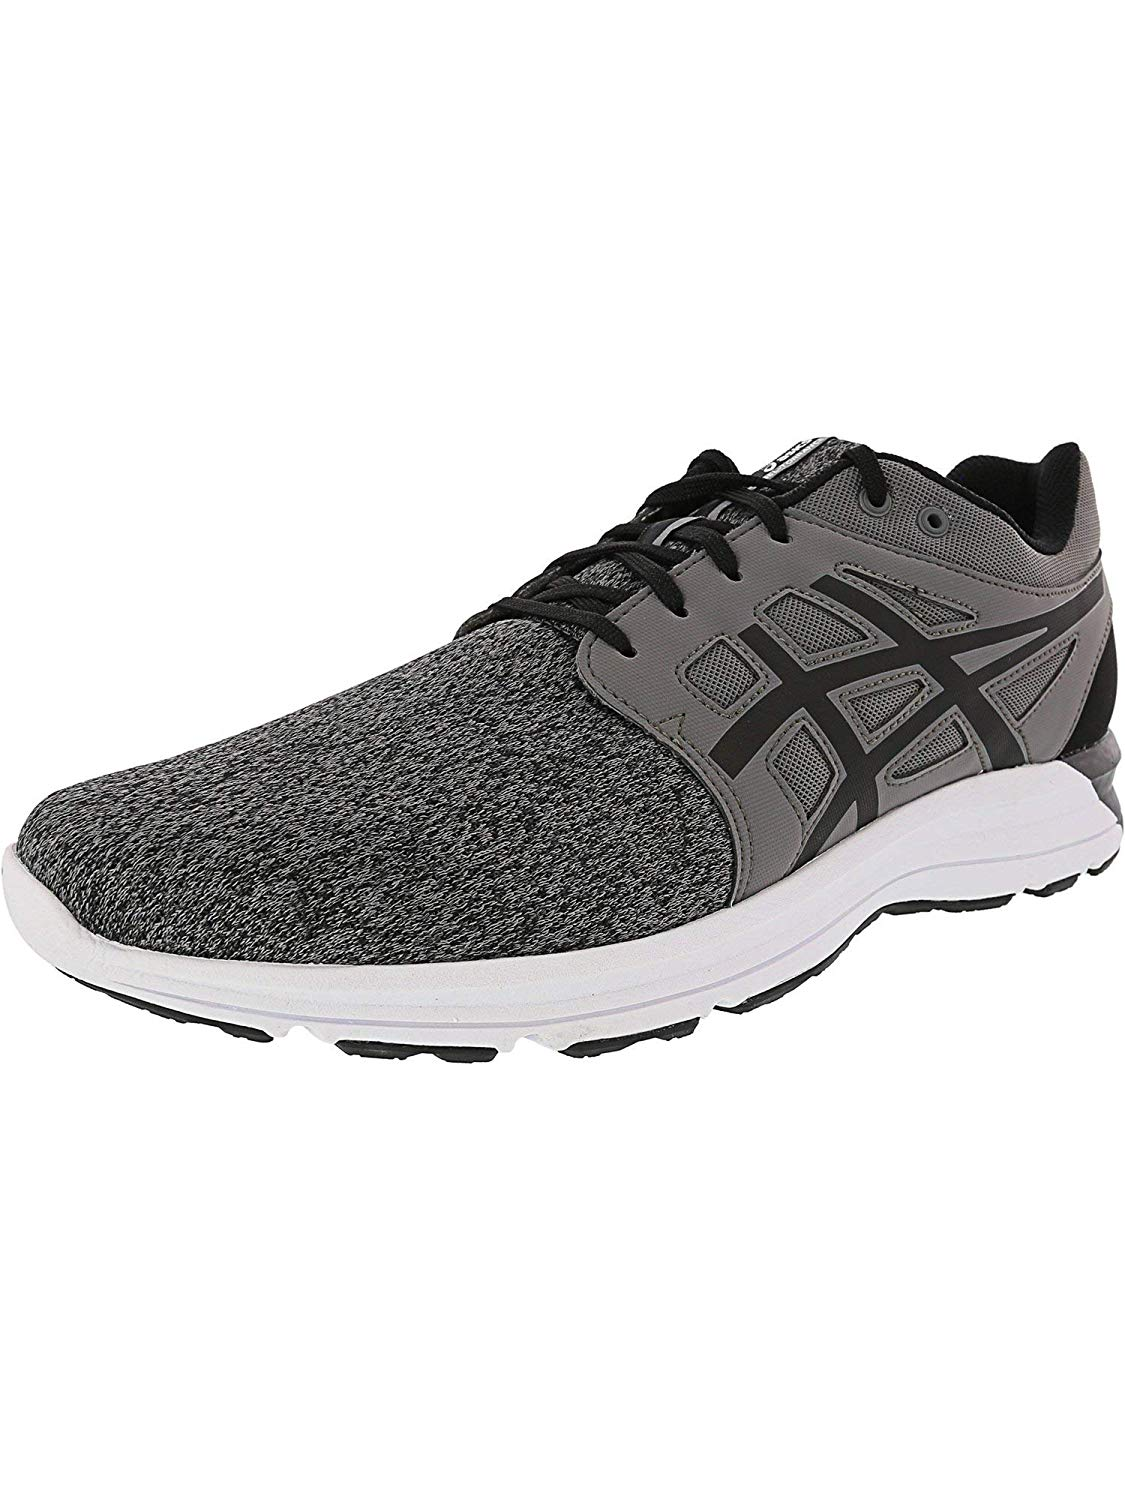 821064580a Asics Mens Gel-Torrance Low Top Lace Up Trail Running Shoes US | Buy ...